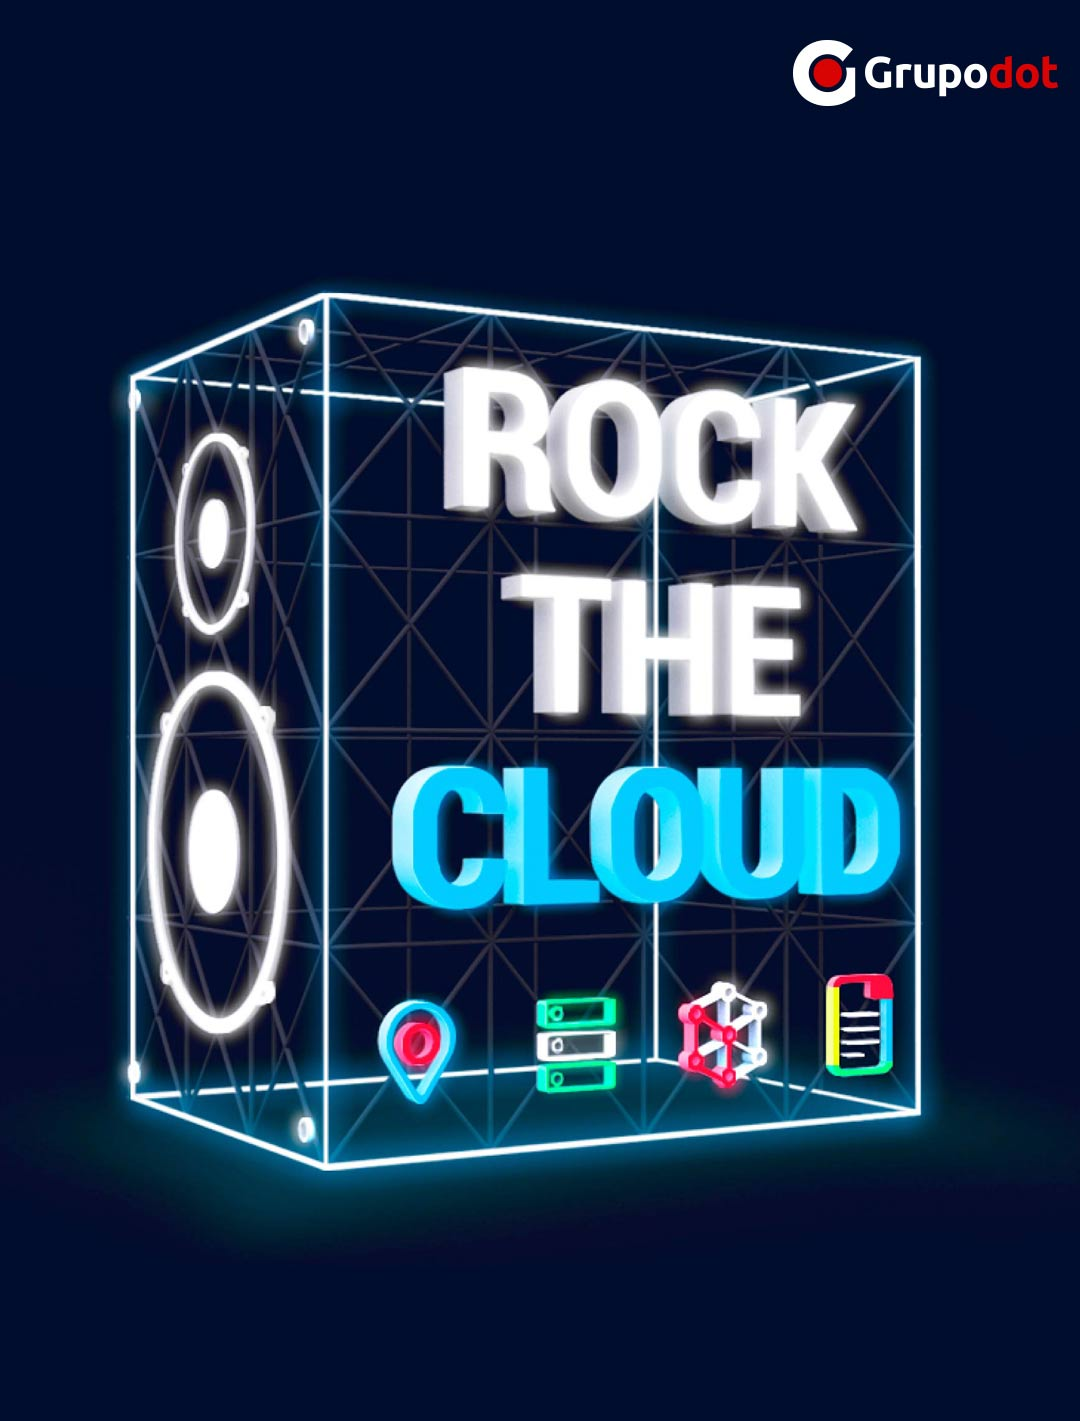 rock the cloud partners colombia